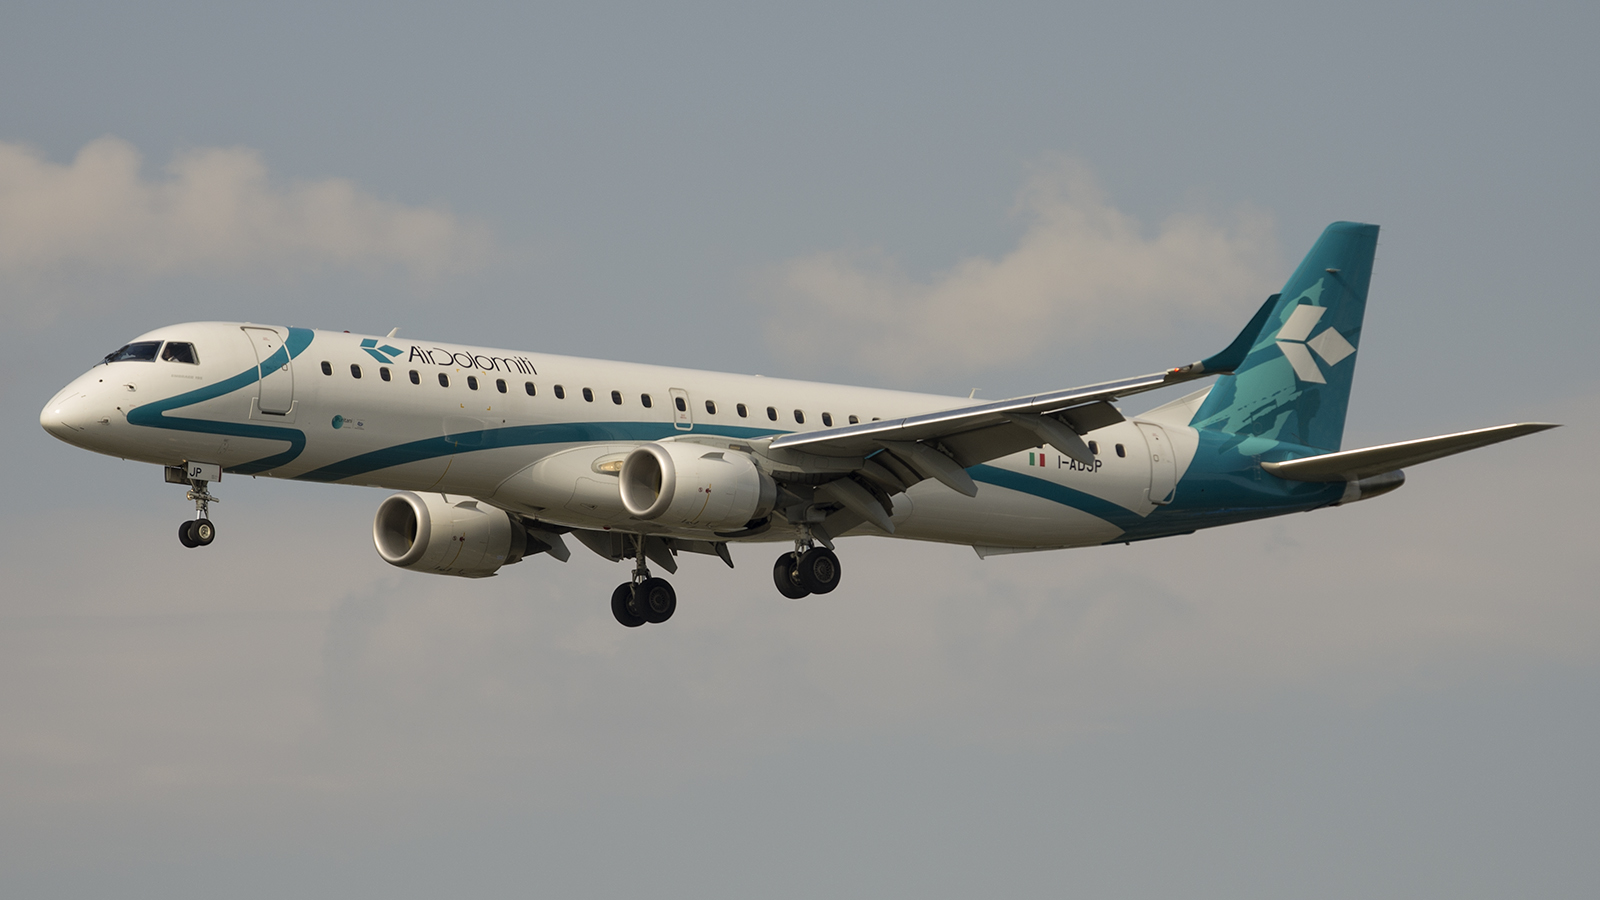 Embraer 195LR I-ADJP Air Dolomiti